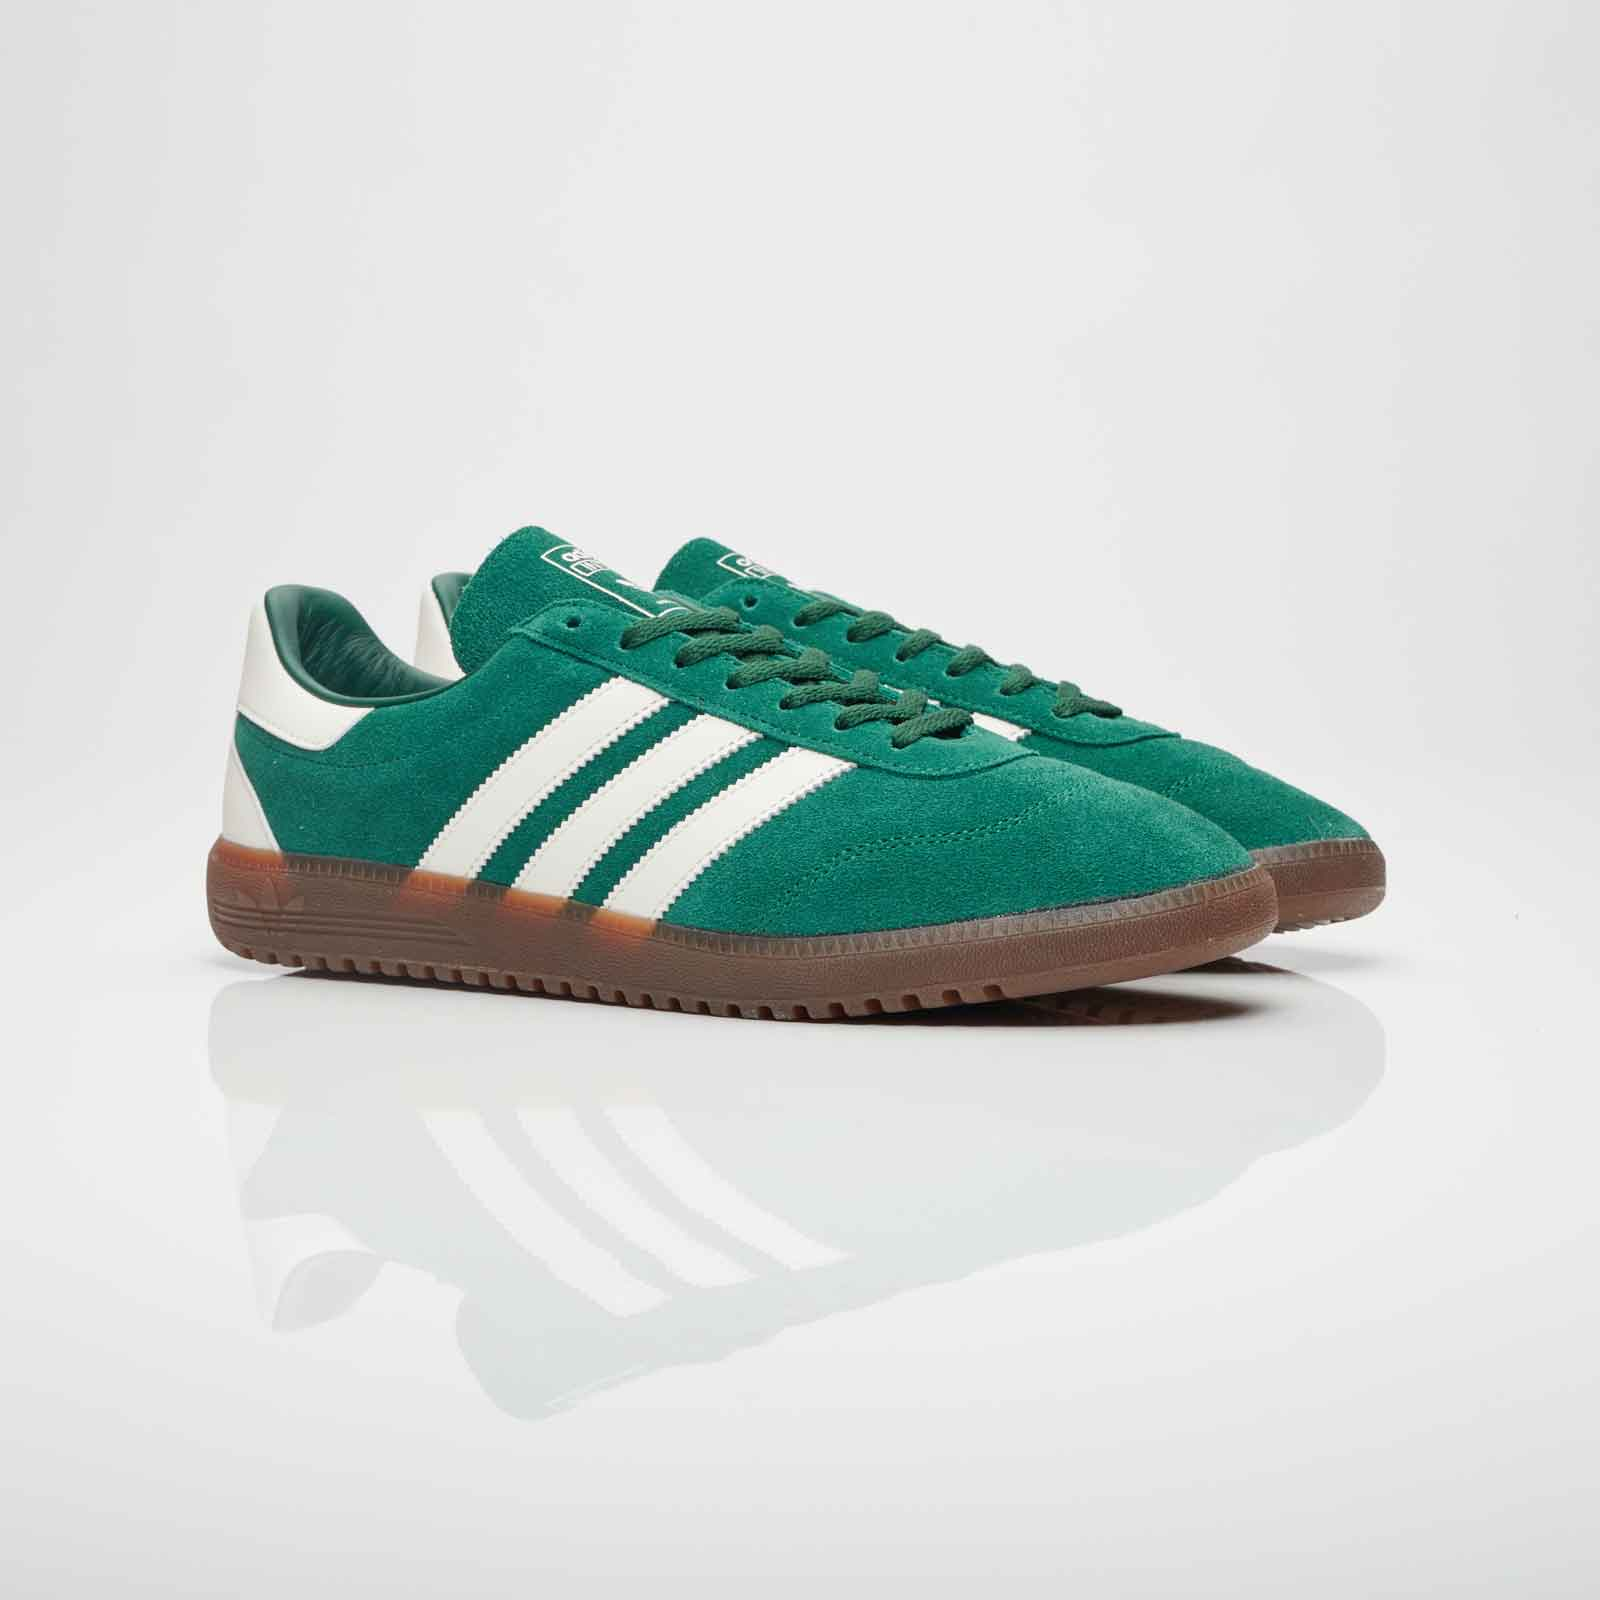 differently c0242 a66f7 adidas Originals Spezial Intack